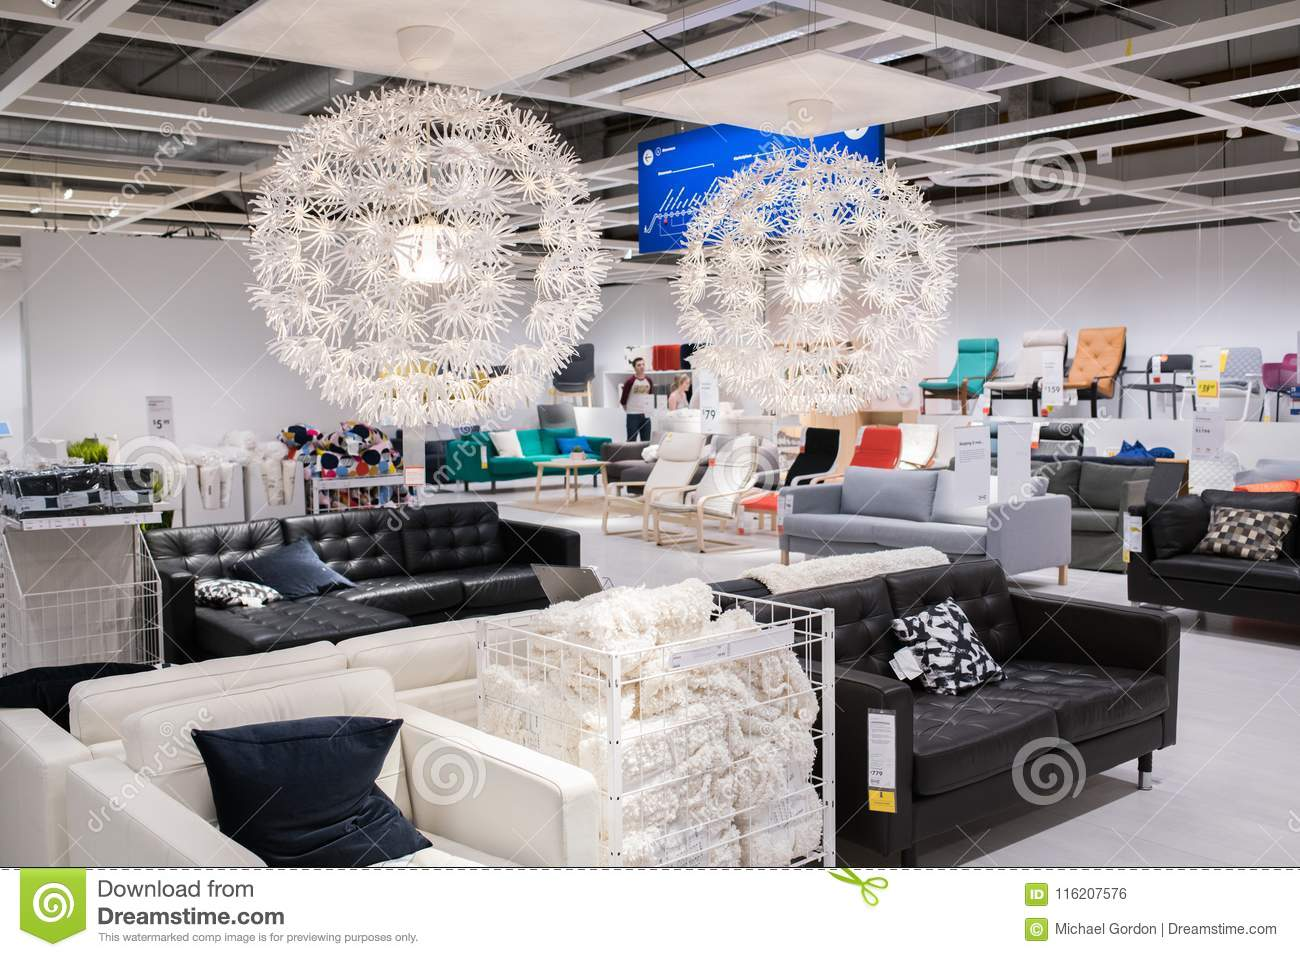 Burbank, CA: May 4, 2018: Interior Of An Ikea Store In Burbank, CA. The  Burbank Ikea Is The Largest Ikea In The United States Of America.